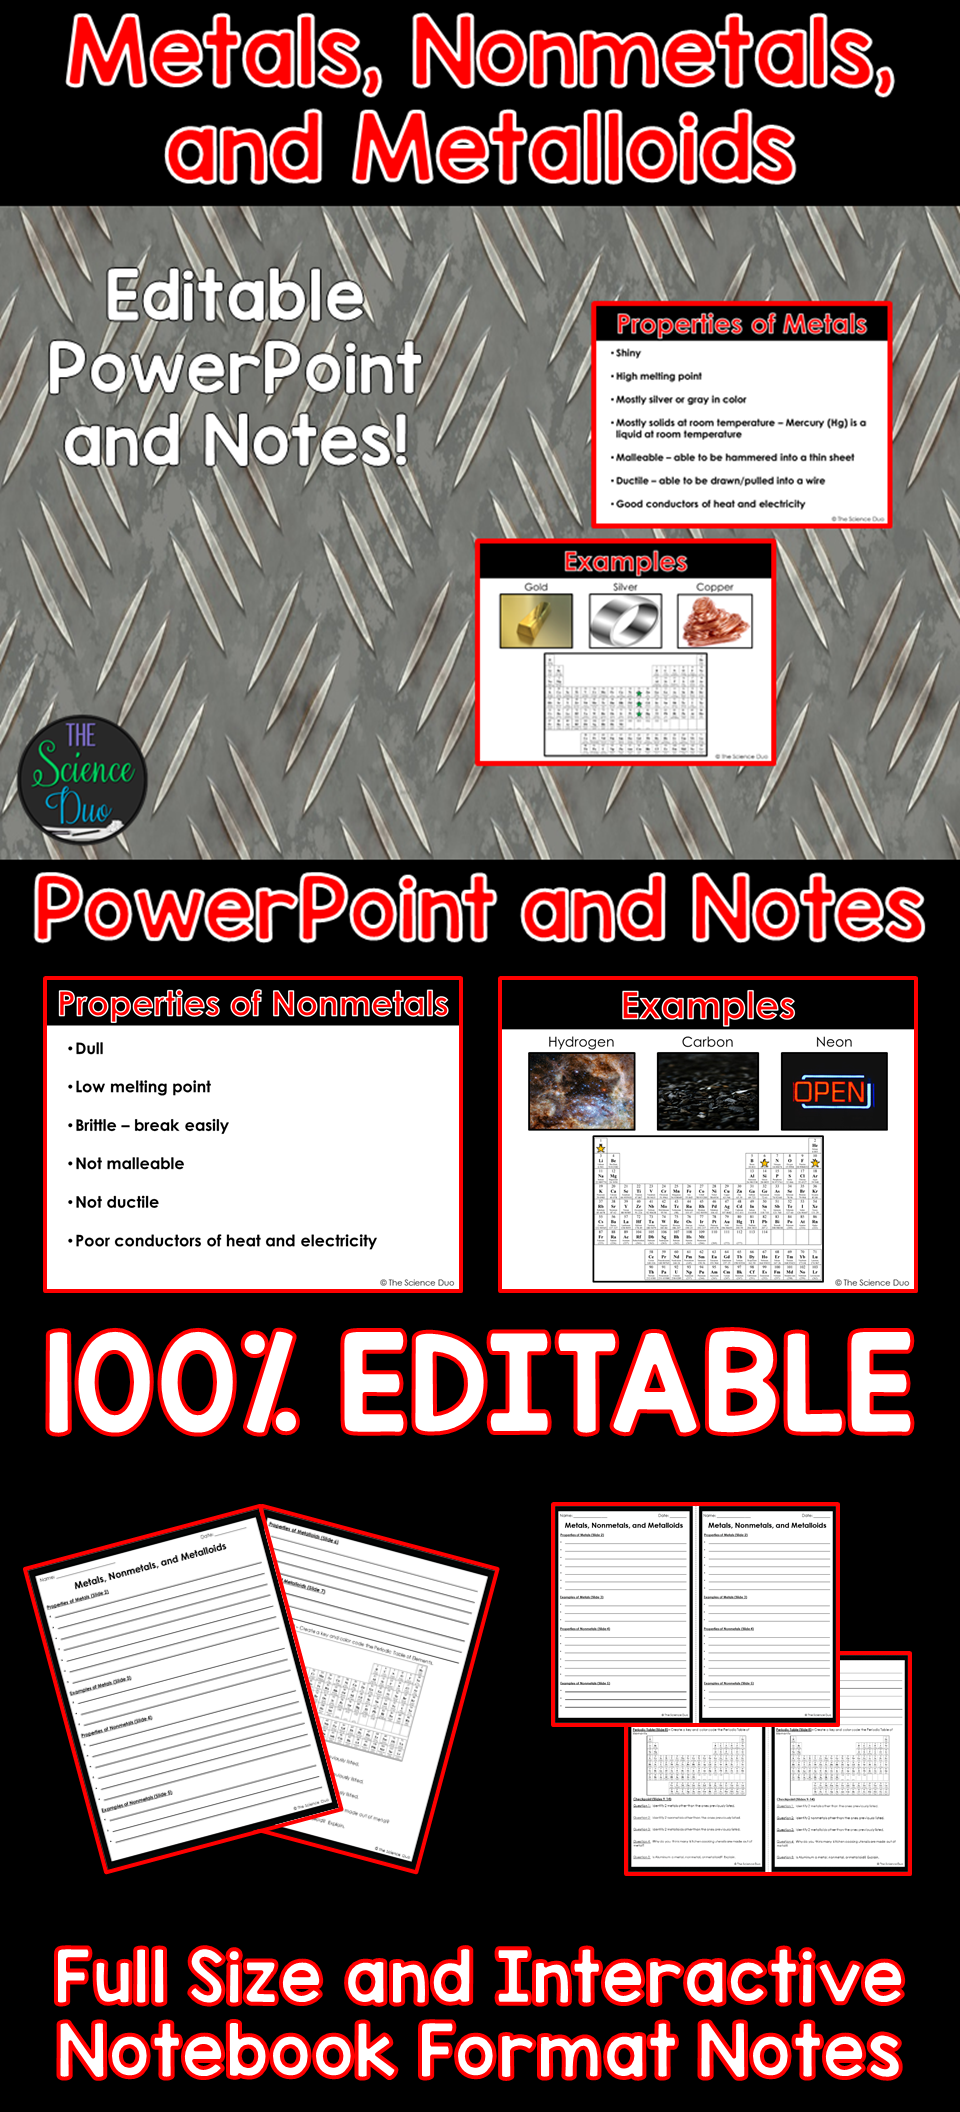 Metals nonmetals and metalloids powerpoint and notes pinterest introduce metals nonmetals and metalloids with this powerpoint presentation properties of metals urtaz Gallery